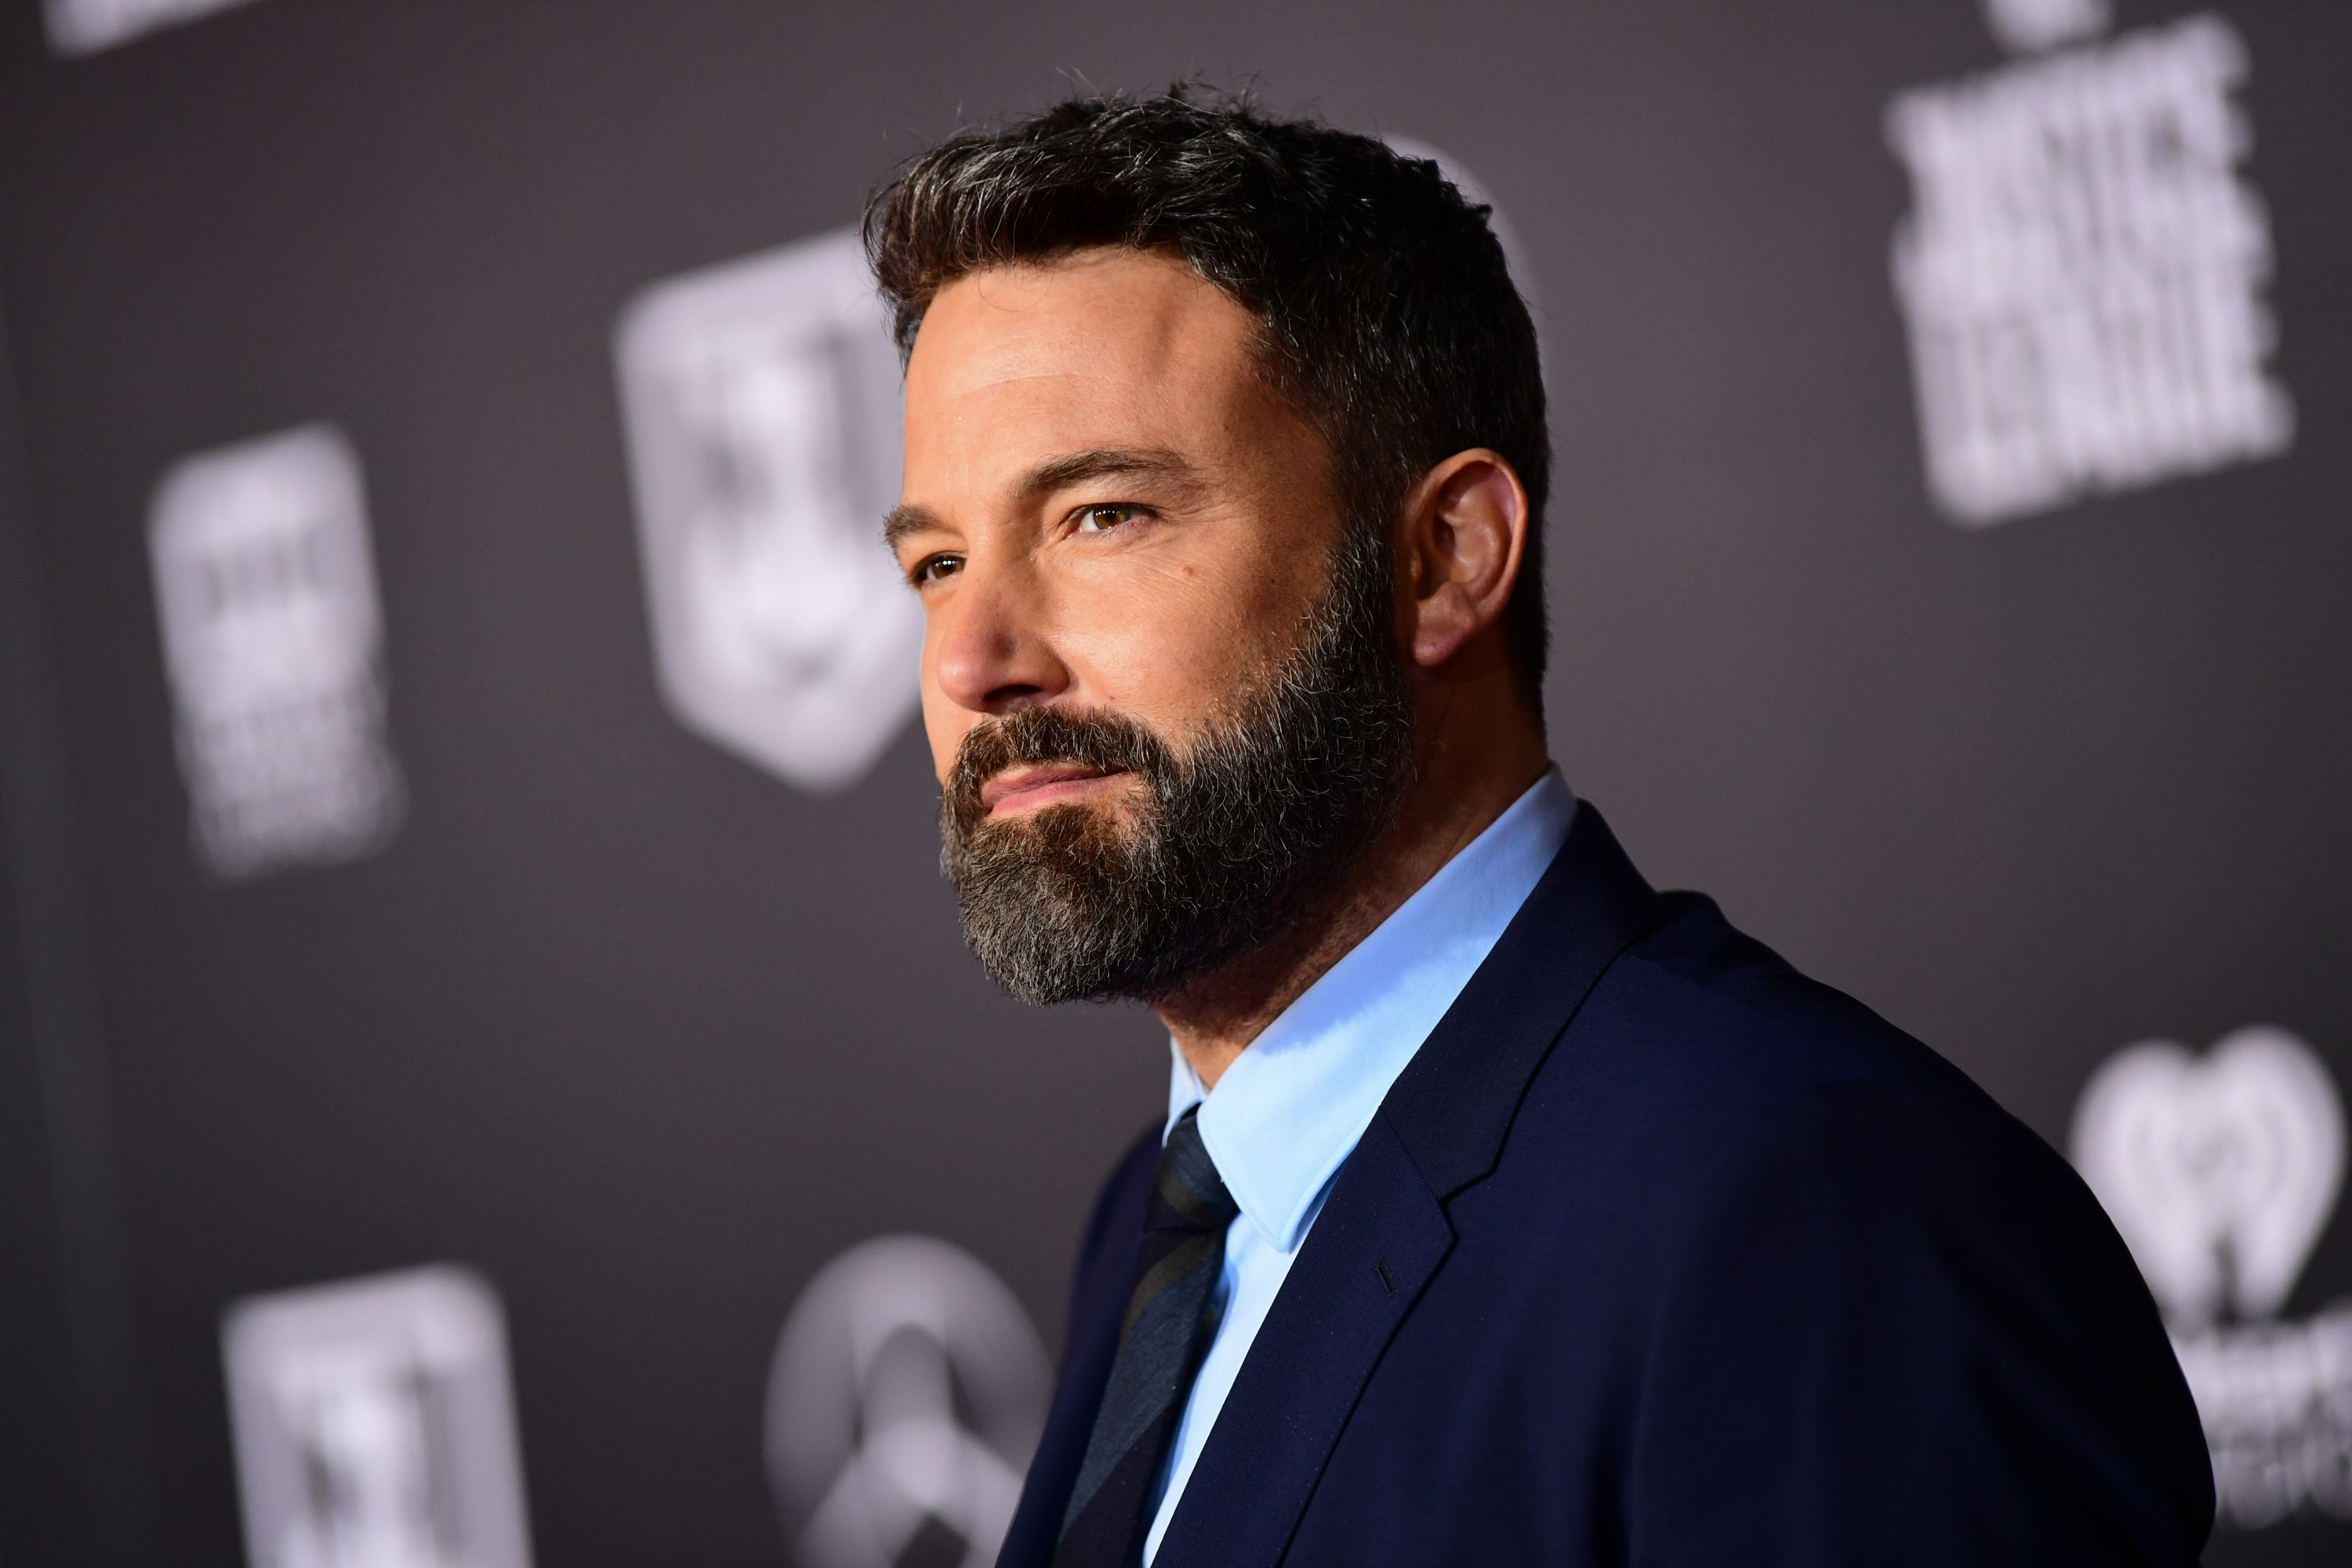 What Is Ben Affleck's Net Worth? - What Is Ben Affleck Worth Now?